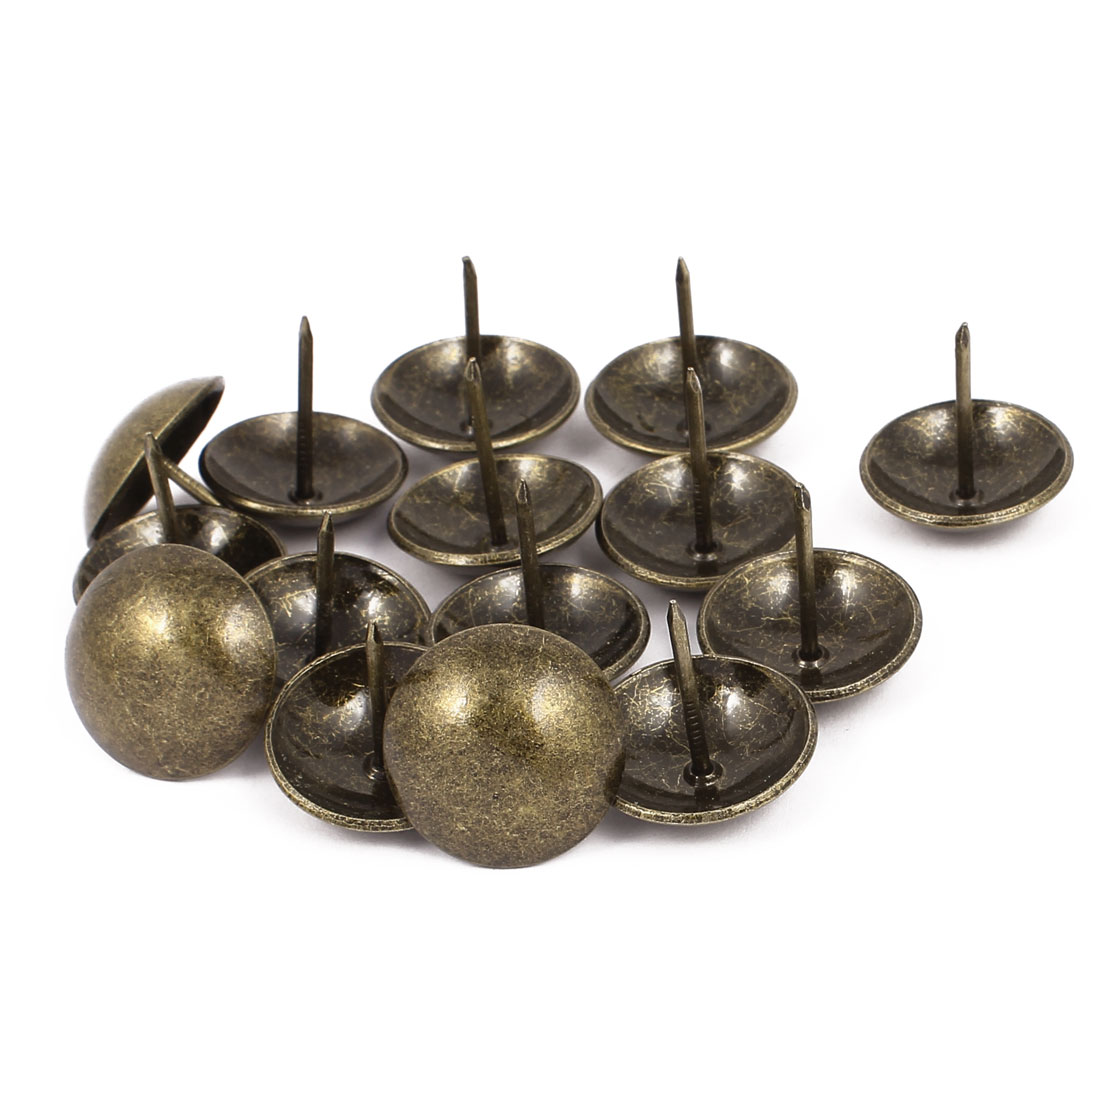 25mm Dia Metal Upholstery Tack Nail Decorative Thumbtack Pushpin Doornail 15PCS